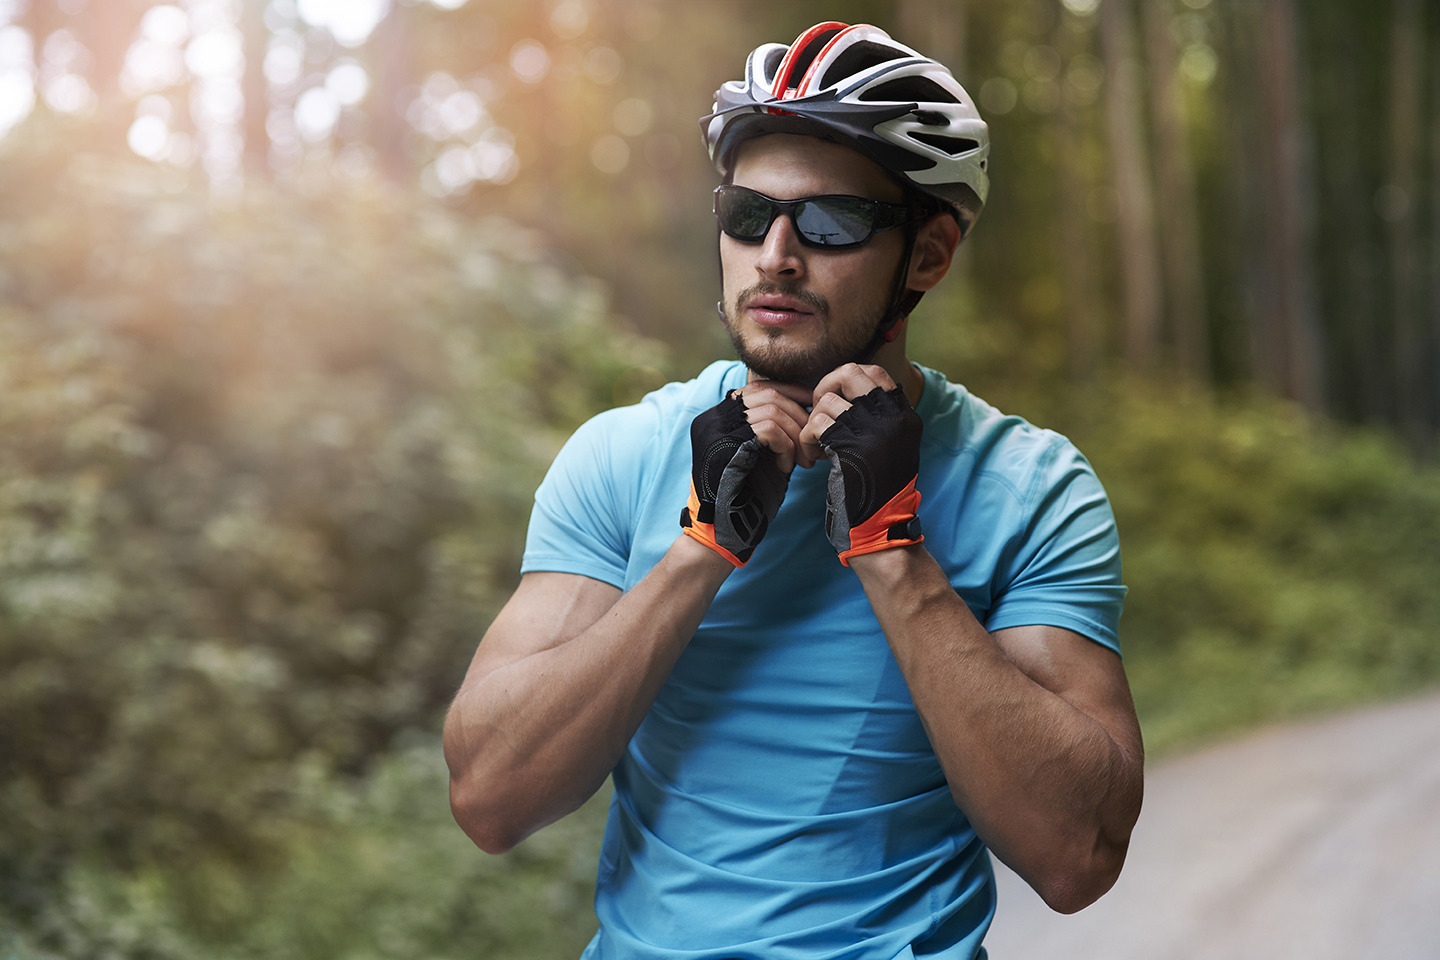 sports eyewear consists of high-strength frames